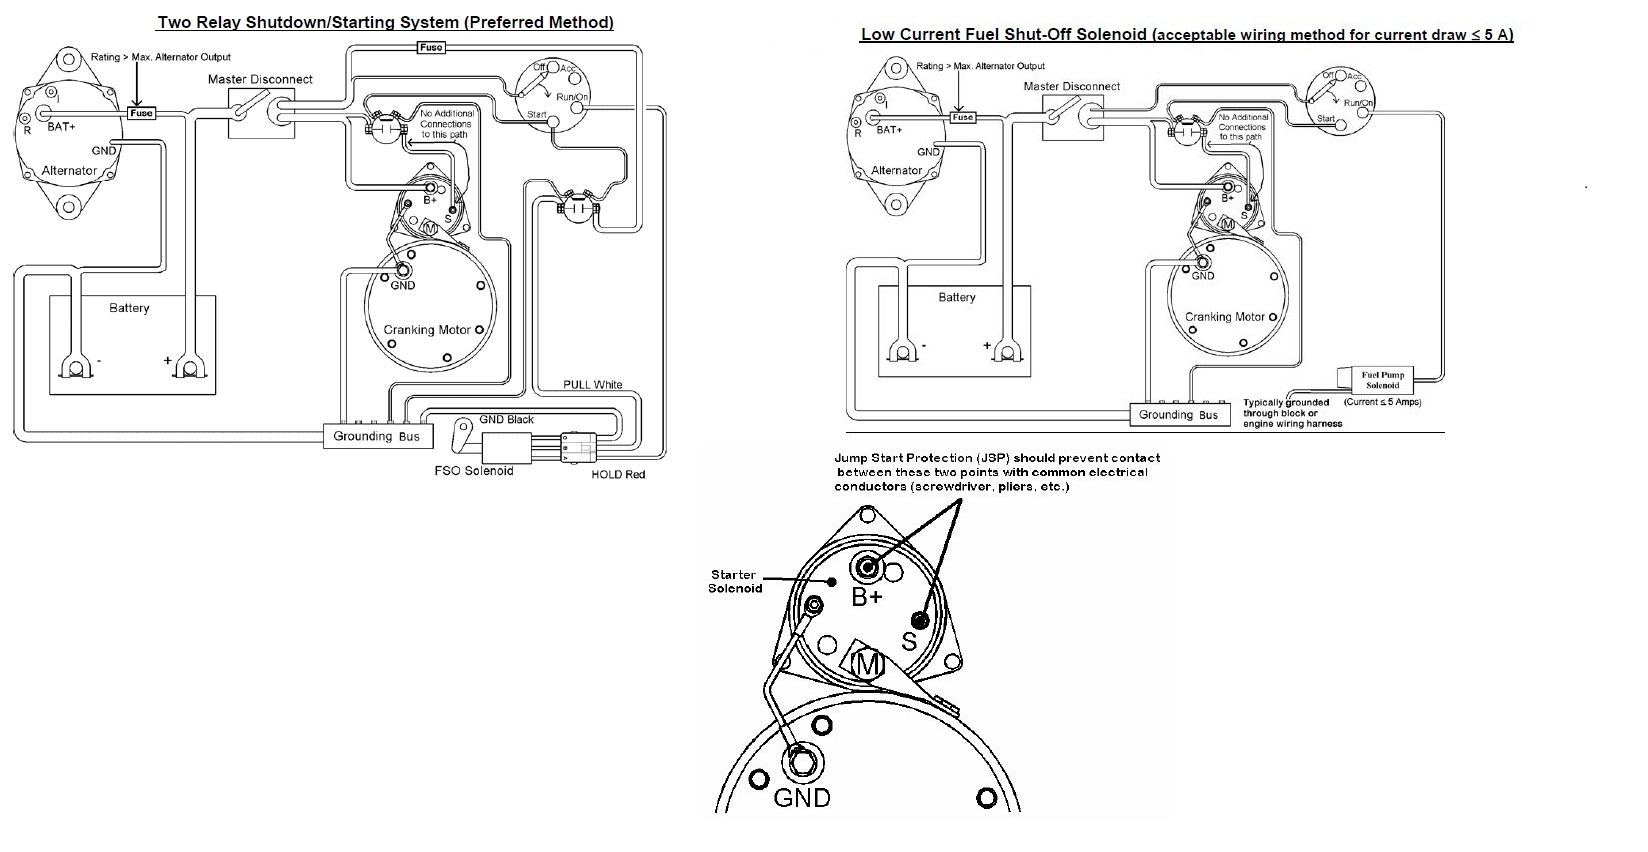 Wiring Diagram For Fuel Shutoff Solenoid